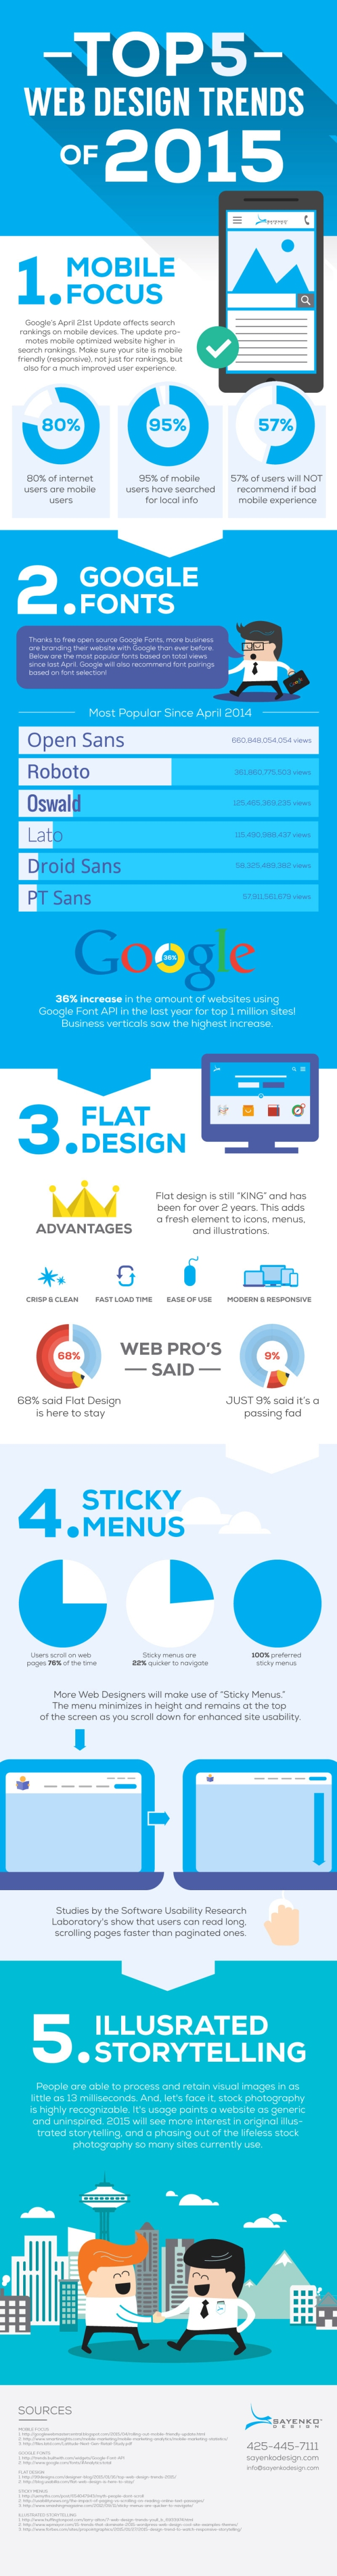 How Modern is Your Website The Biggest Web Design Trends From 2015